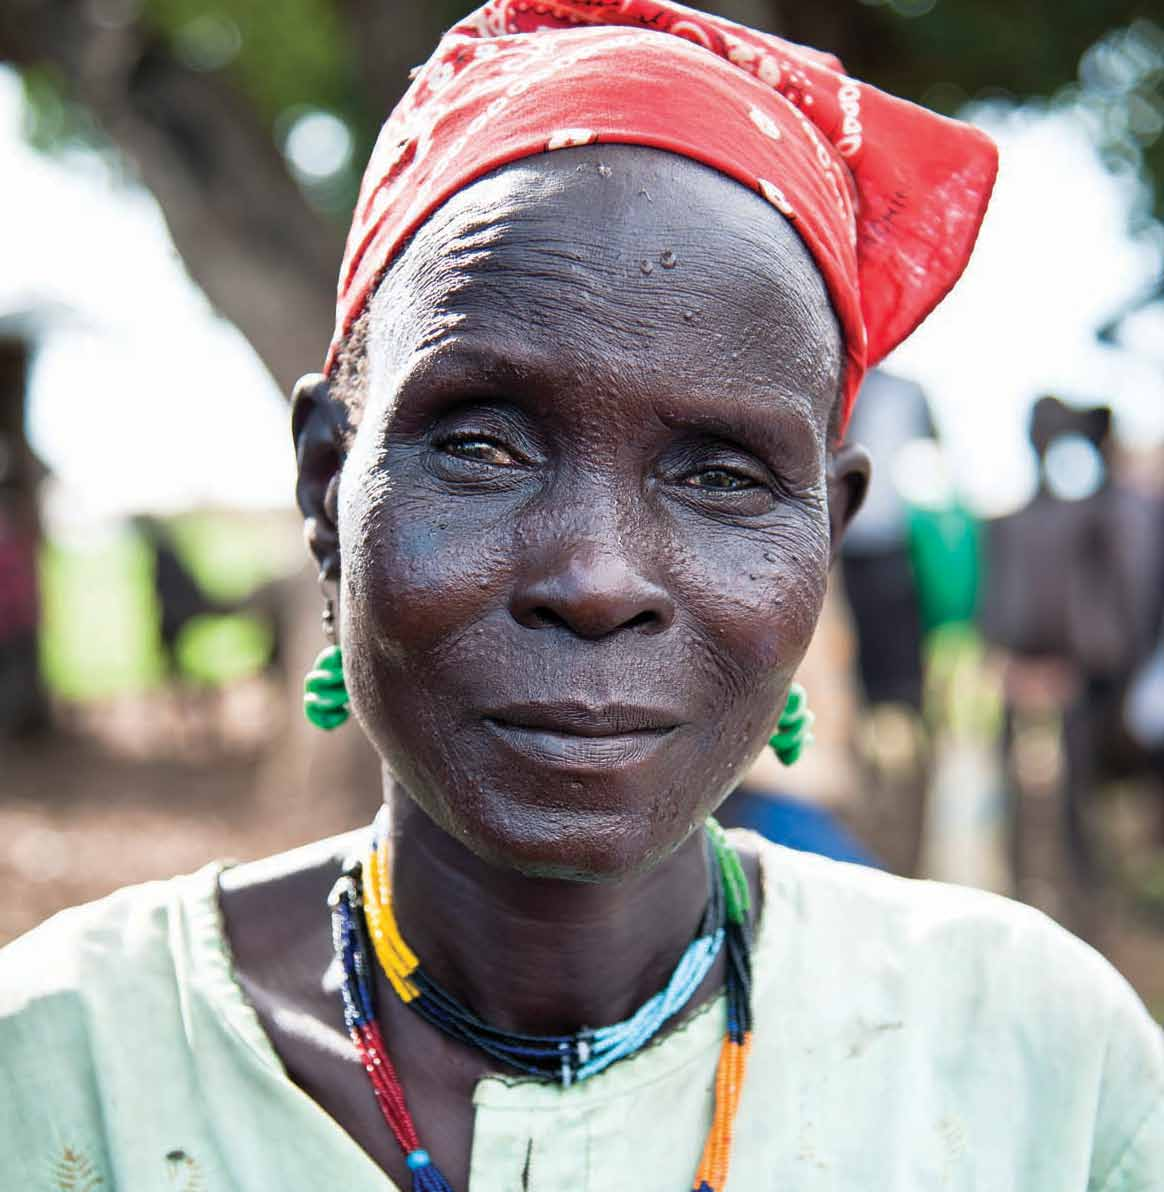 A South Sudanese refugee at the Leitchour camp in the Gambella region of Ethiopia, near the border with South Sudan.